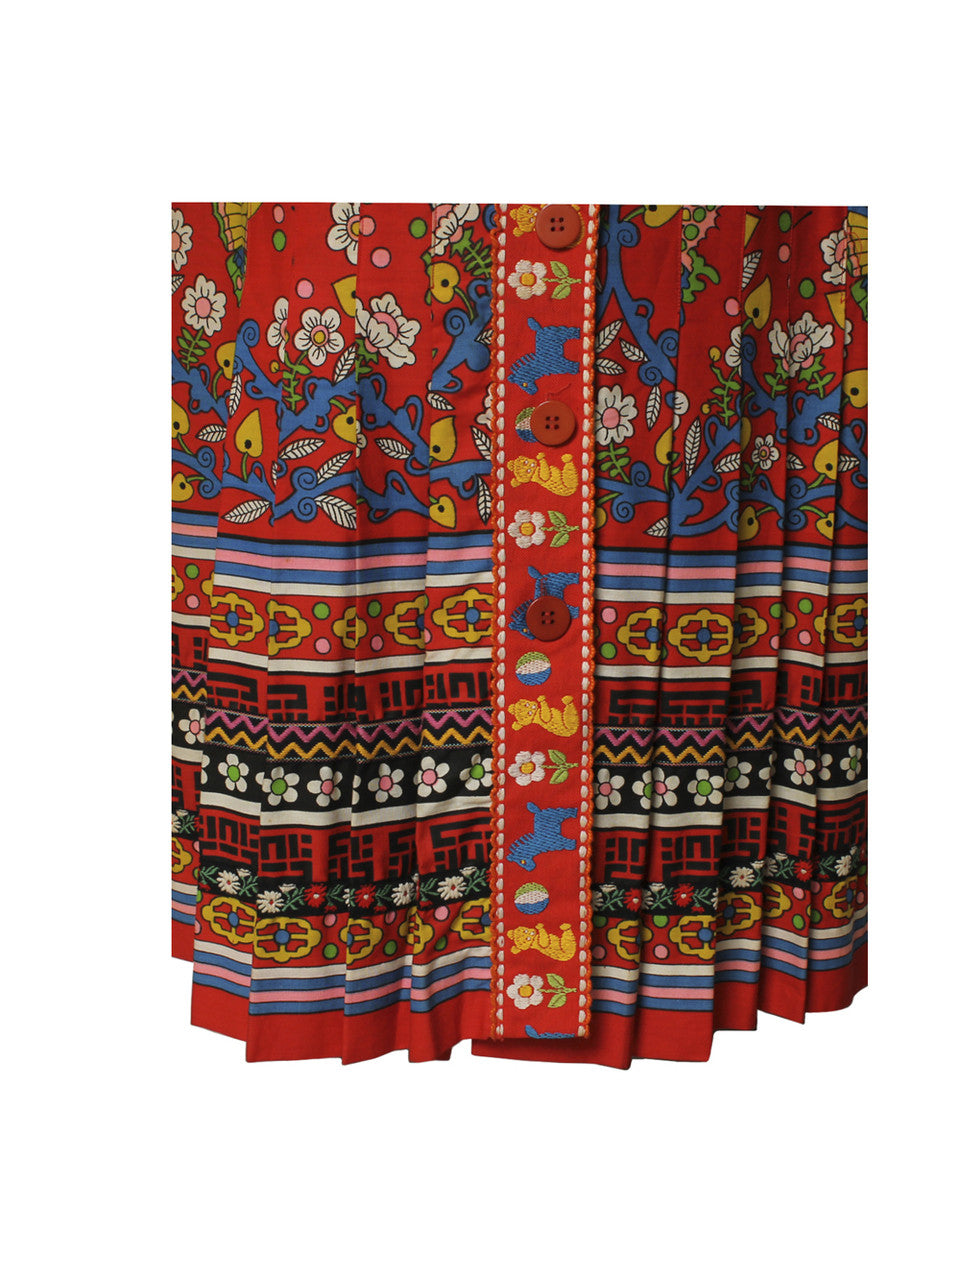 Giorgio di Sant' Angelo 1970s Novelty Skirt